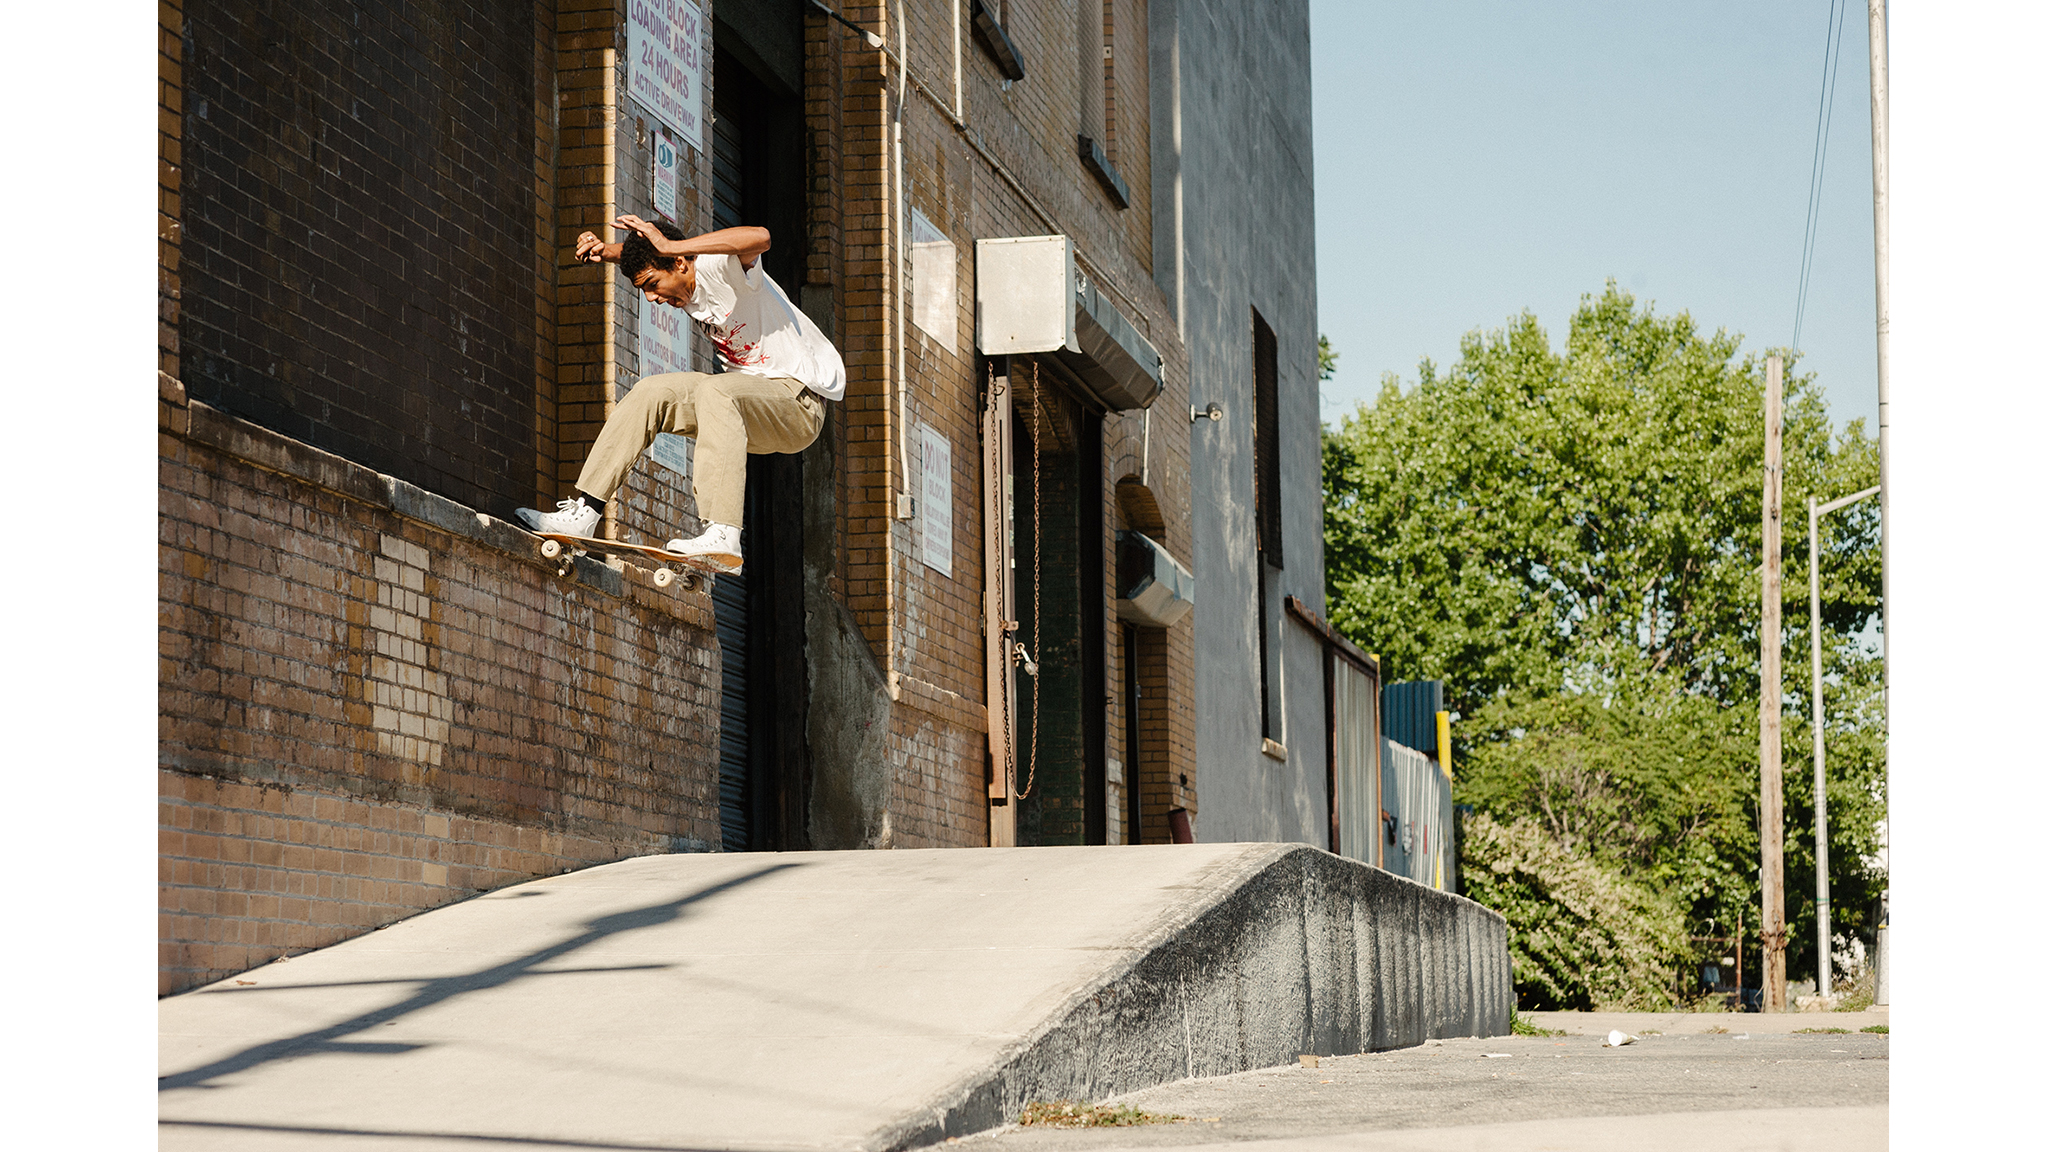 Tailslide as seen in the Supreme video Cherry.